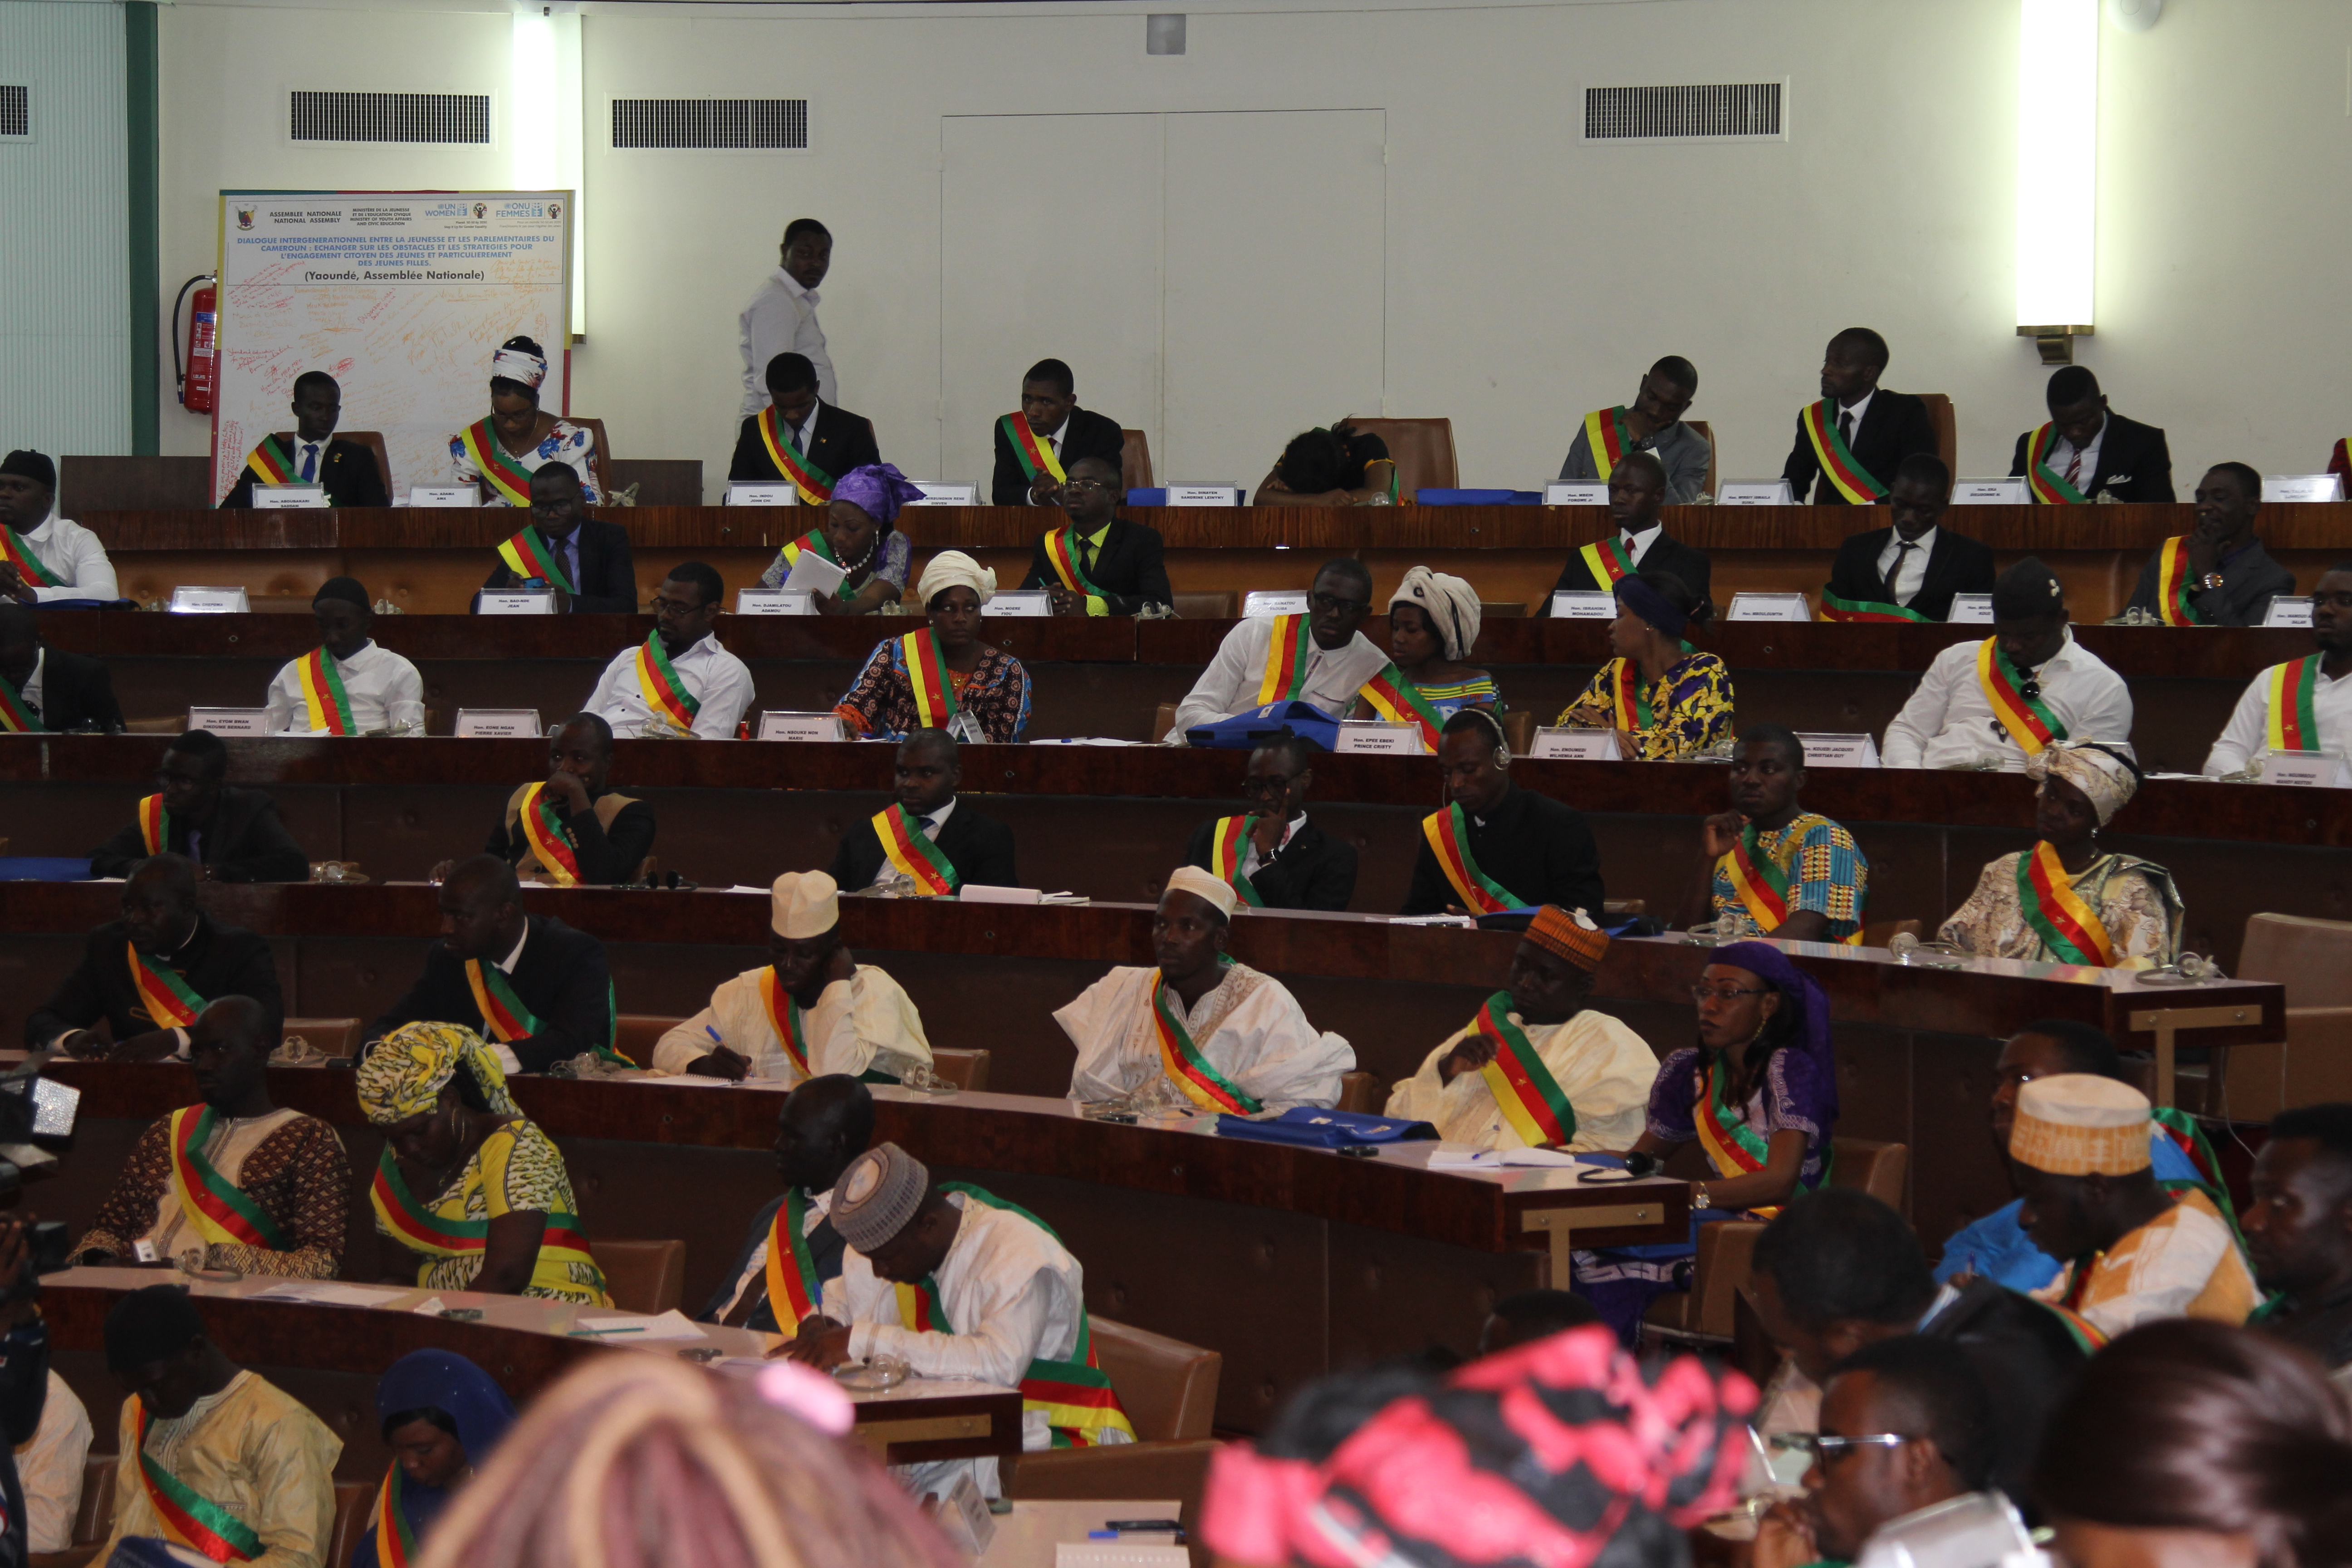 A cross section of the youth parliamentarians attending the intergenerational dialogue to promote peace, social cohesion and national unity